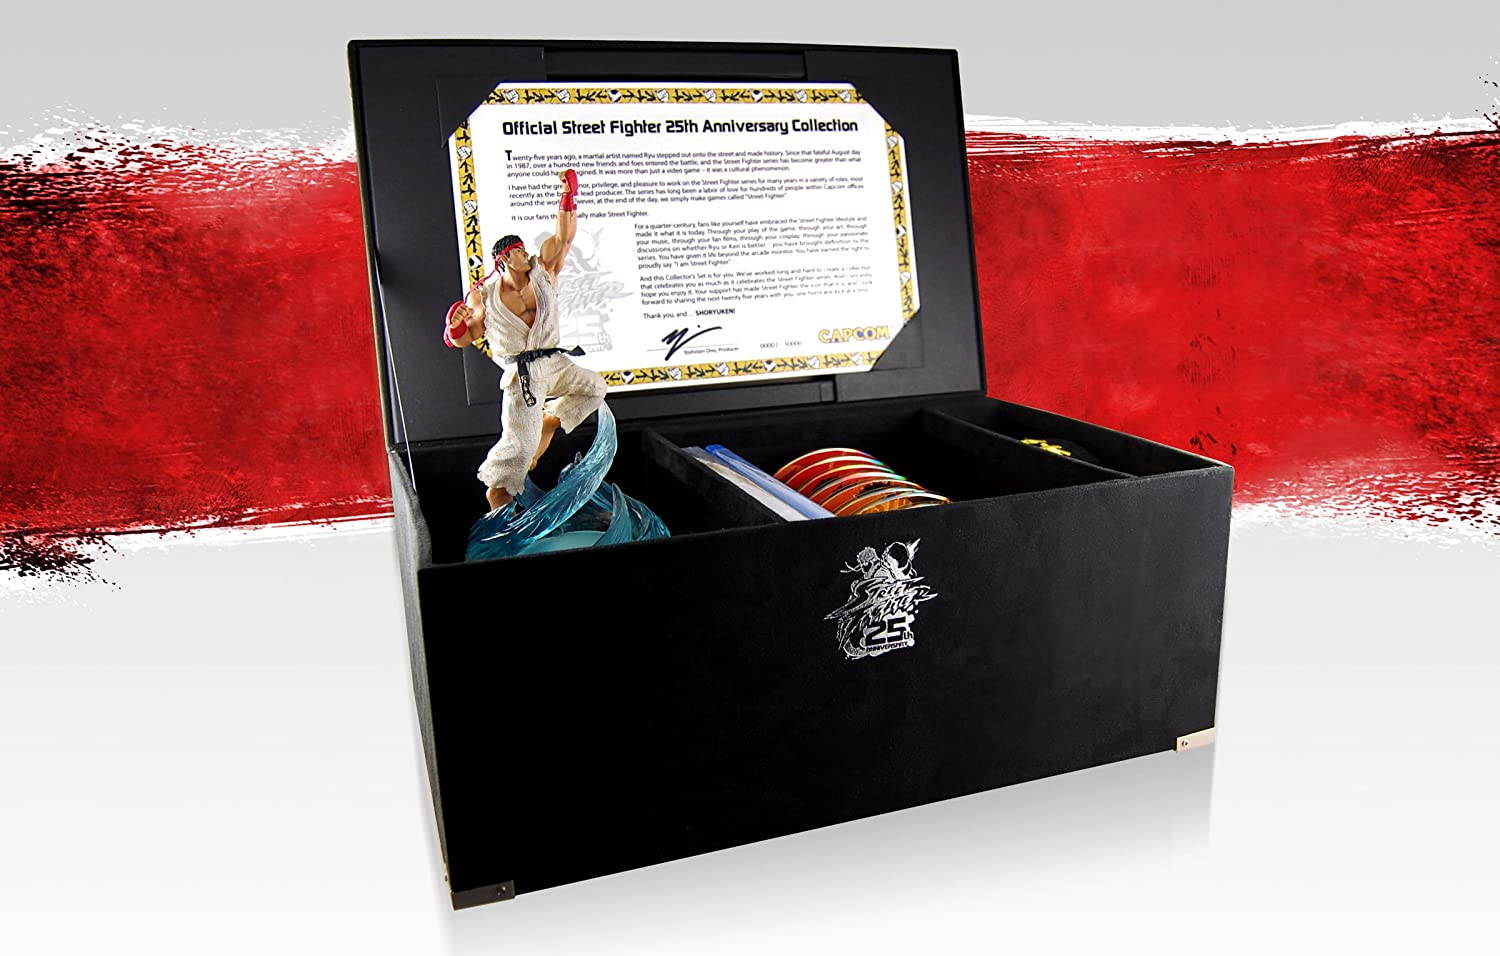 Amazon.com: Street Fighter 25th Anniversary Collectors Set ...